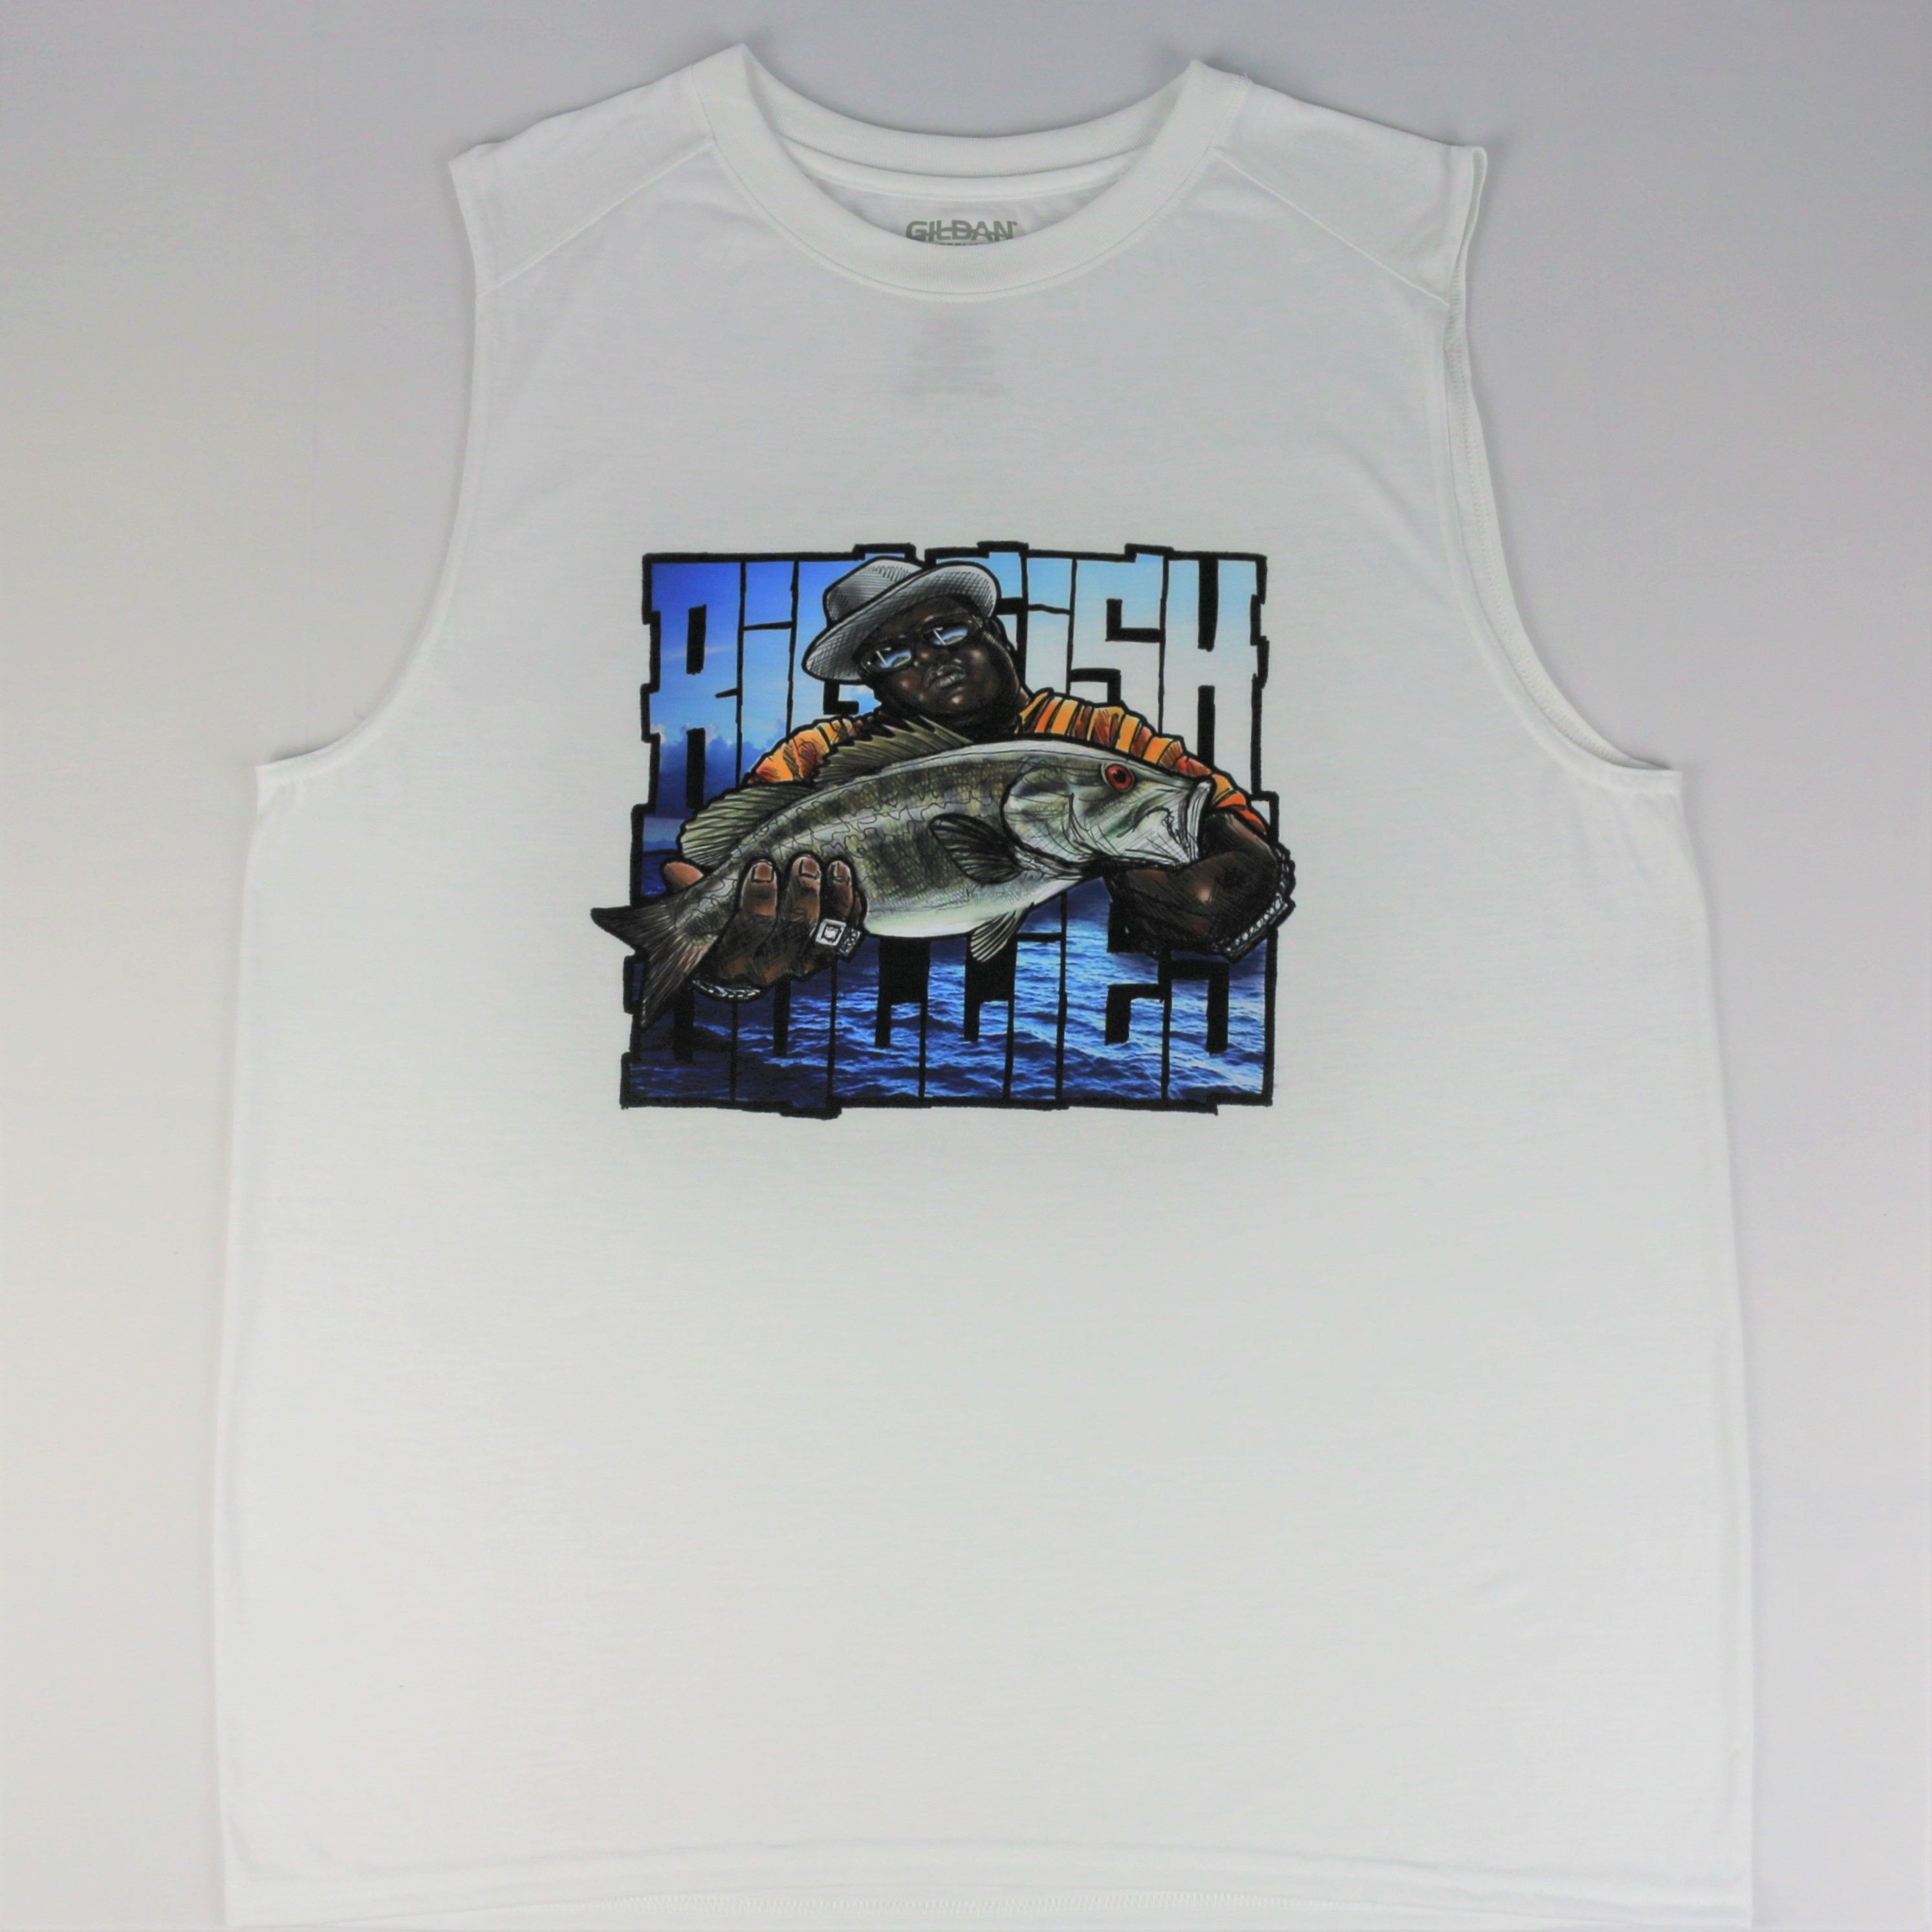 The BigSmallmouthBully Muscle Tee